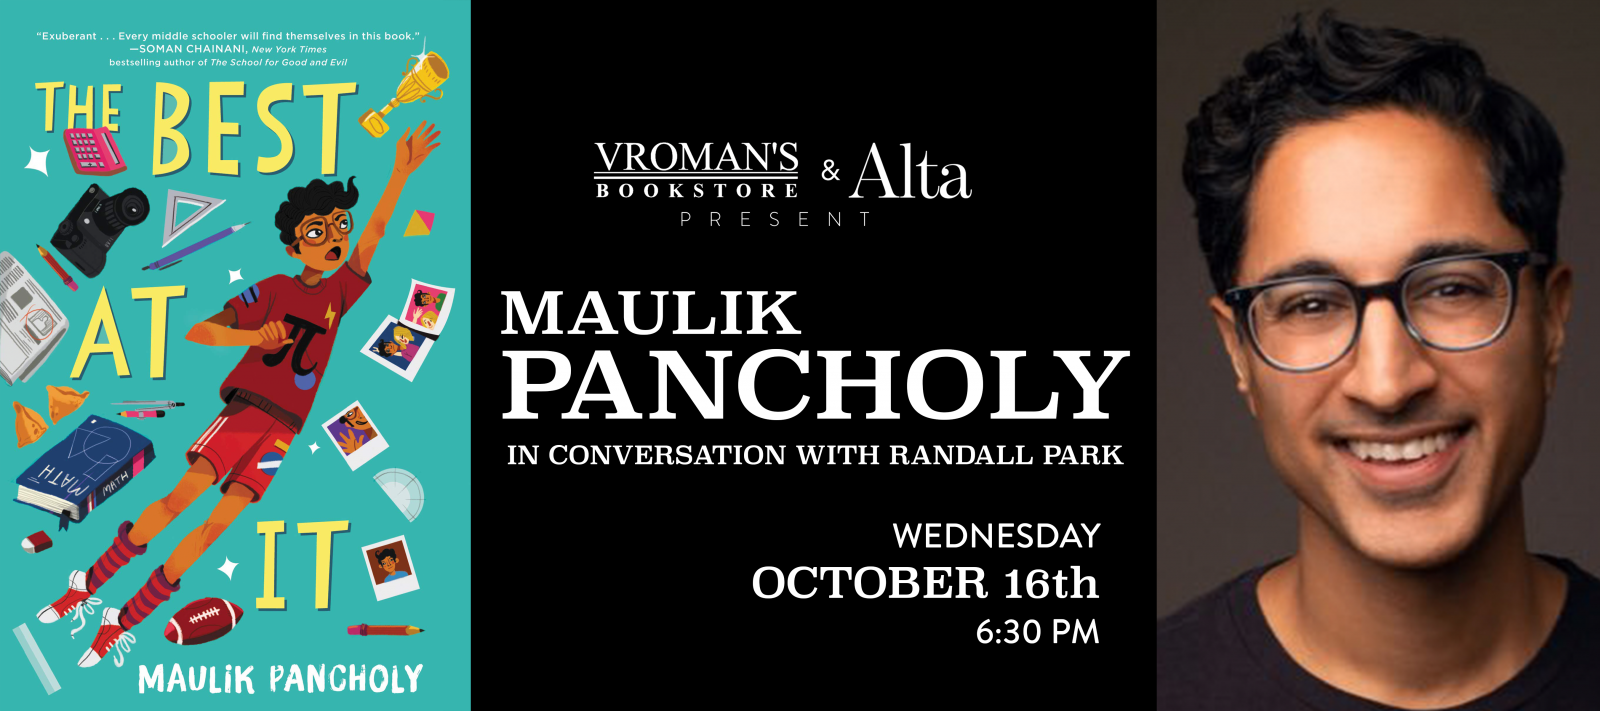 Maulik Pancholy book signing Wednesday October 16 at 6:30pm